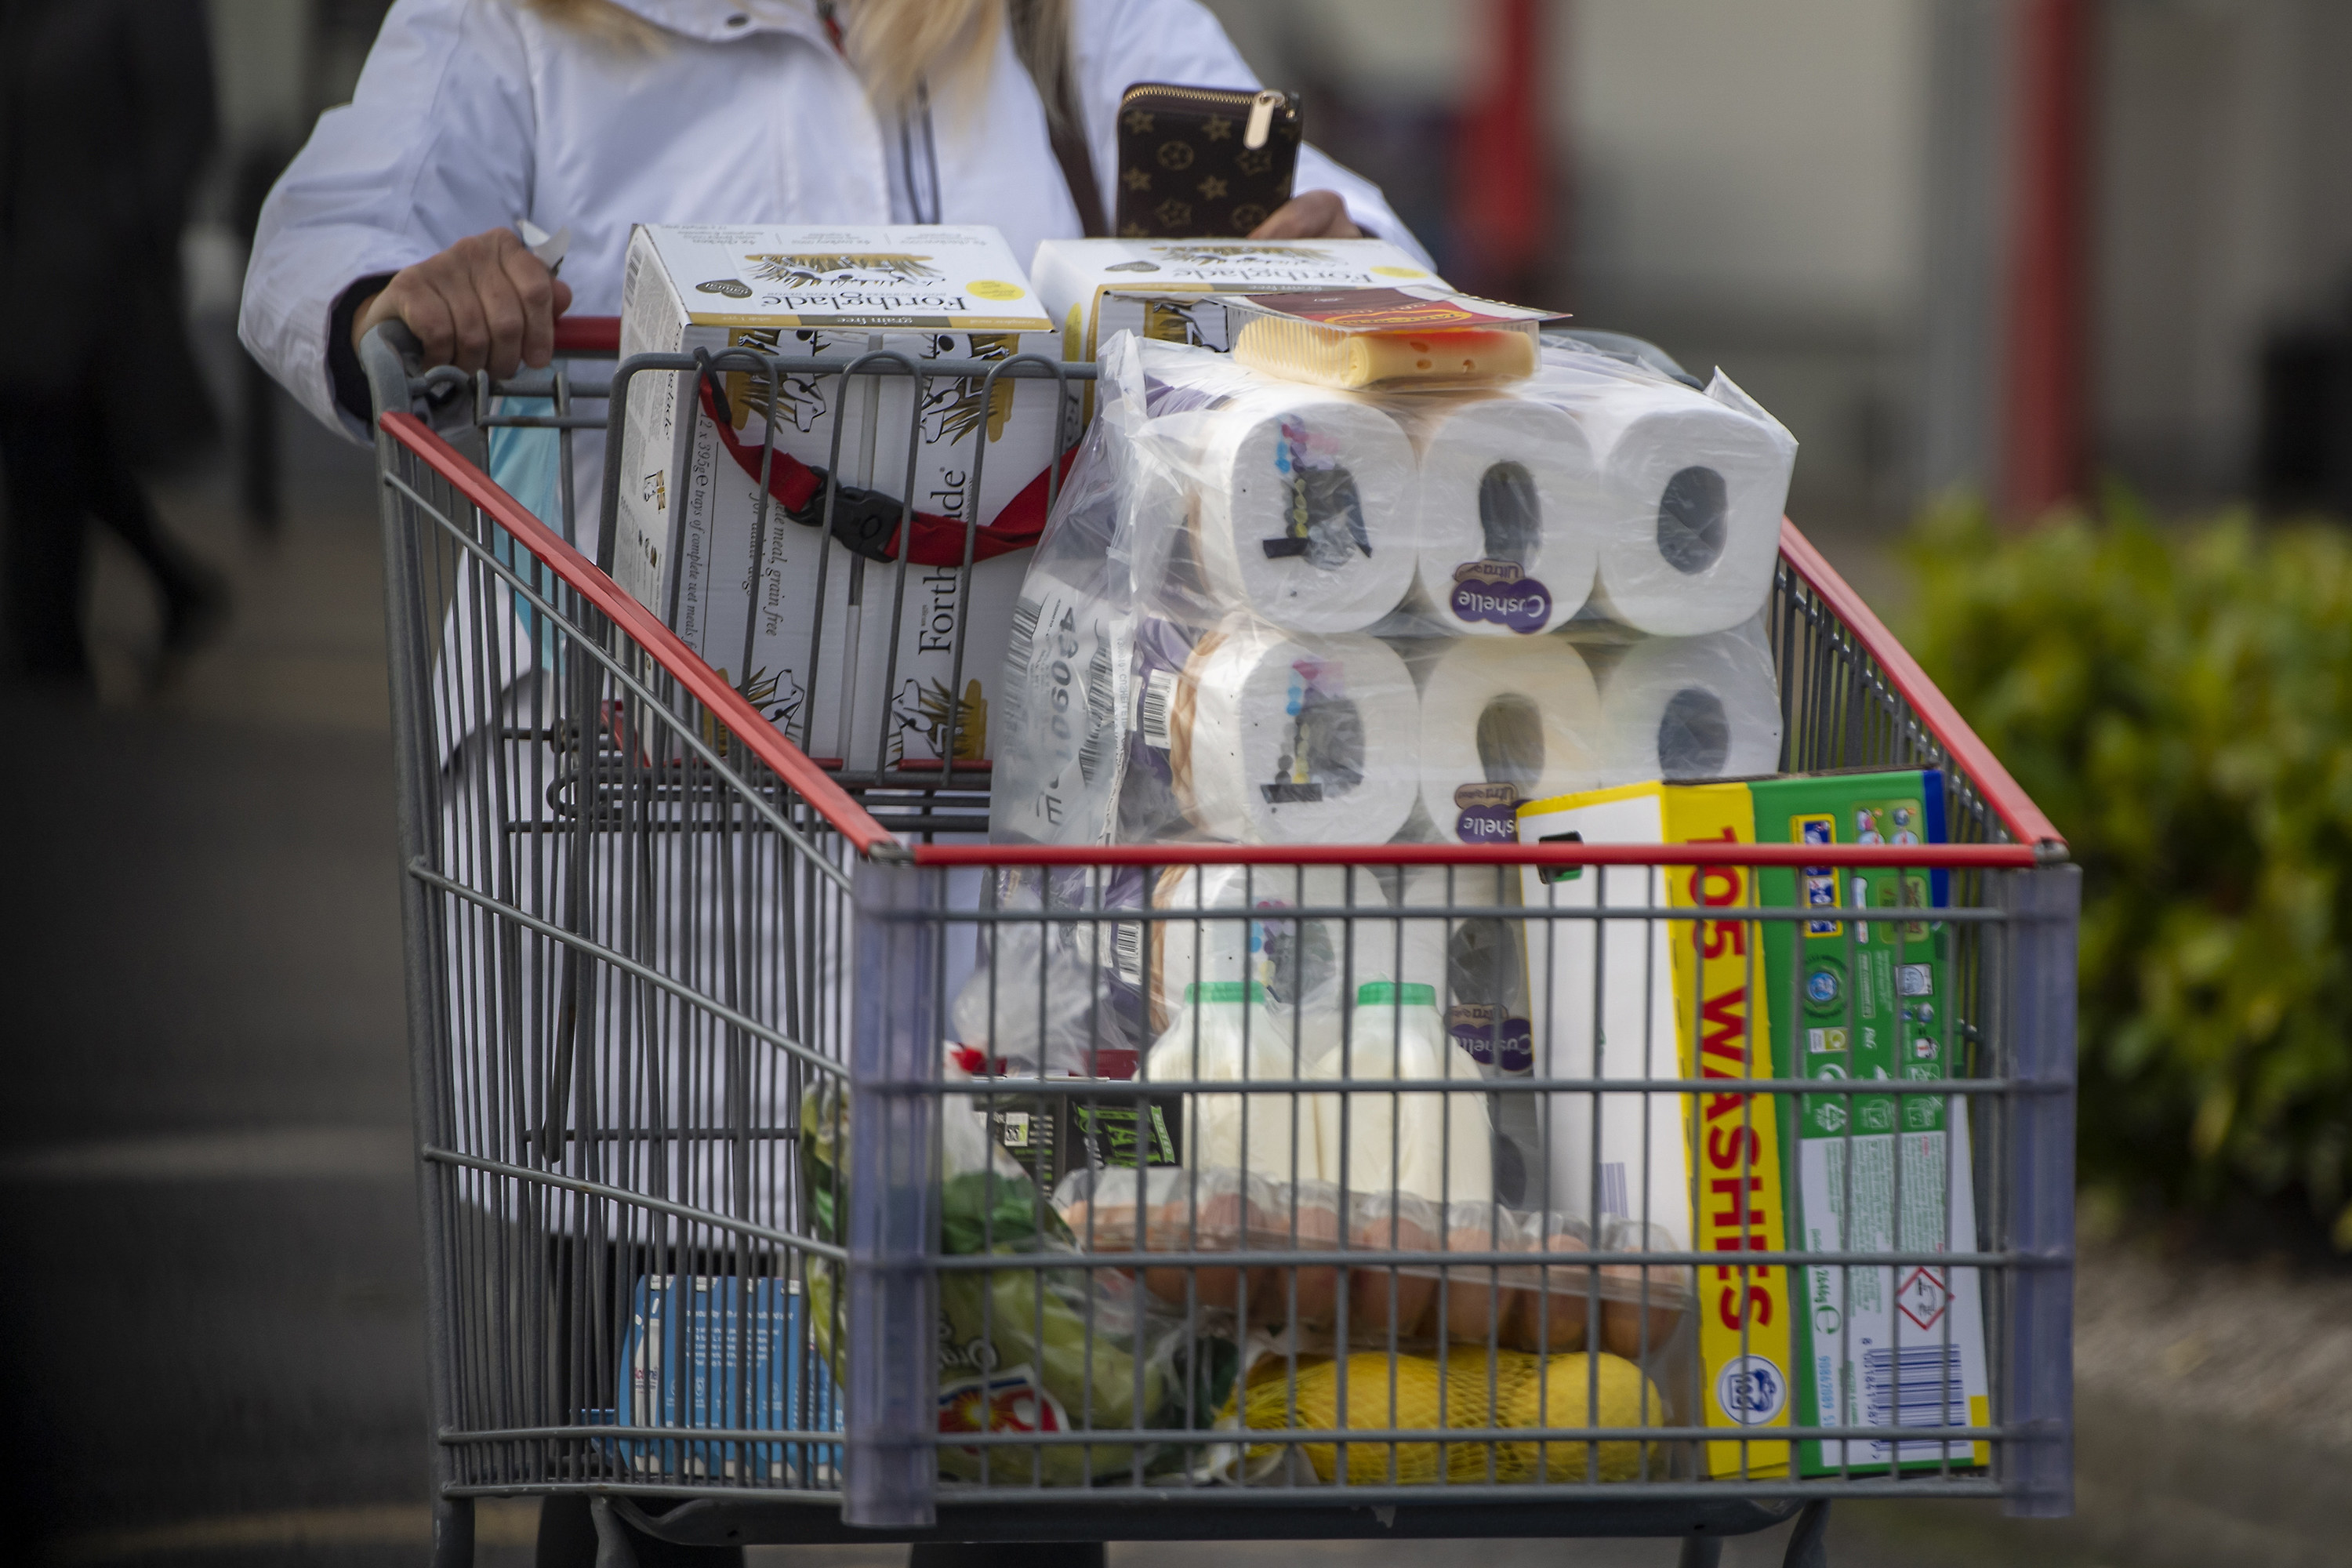 A woman pushing her groceries in a cart